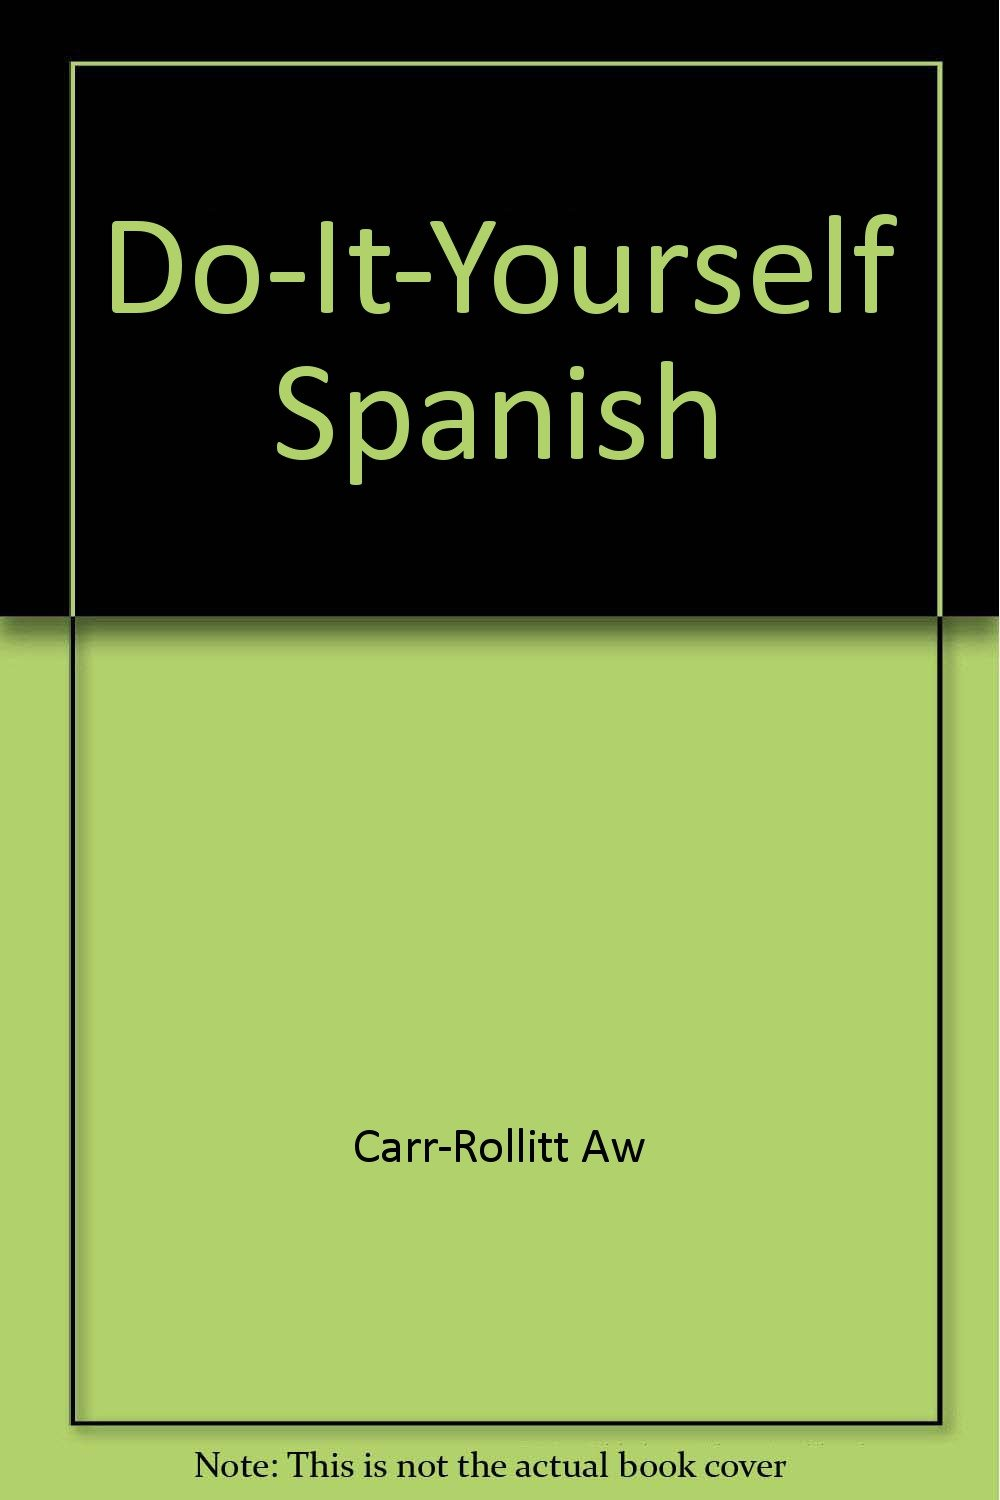 Do it yourself spanish albert william carr rollitt 9780891440123 do it yourself spanish albert william carr rollitt 9780891440123 amazon books solutioingenieria Images